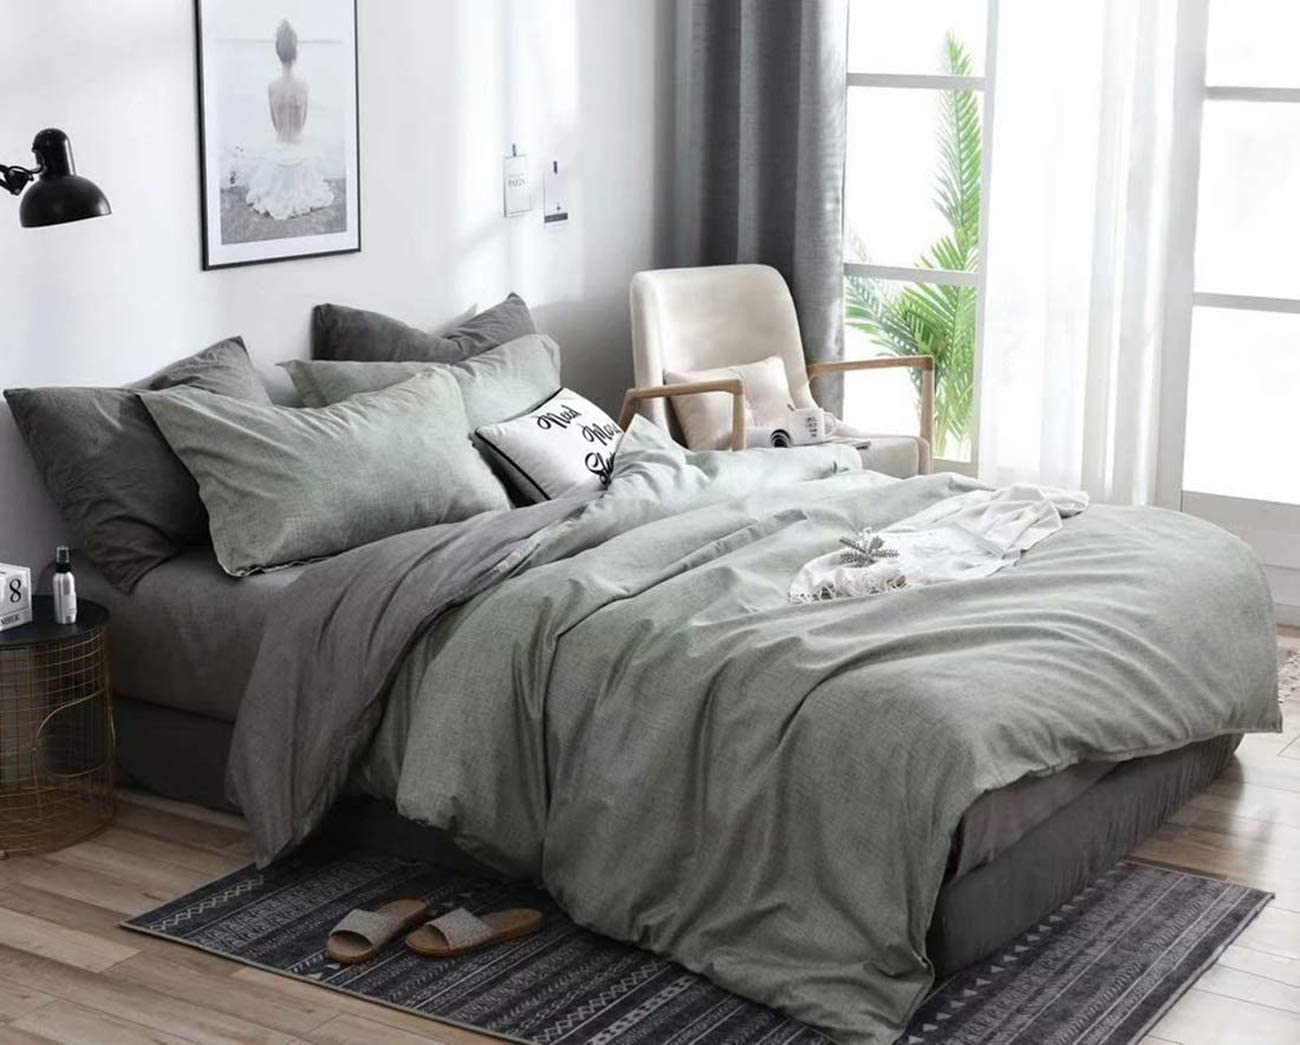 Amazon Com Couturebridal 3 Pieces Green Grey Chambray Duvet Cover Set Queen Size Modern Solid Color Microfiber Bedding Sets Reversible Taupe Gray Rustic Style Comforter Quilt Covers For Men Women Kitchen Dining